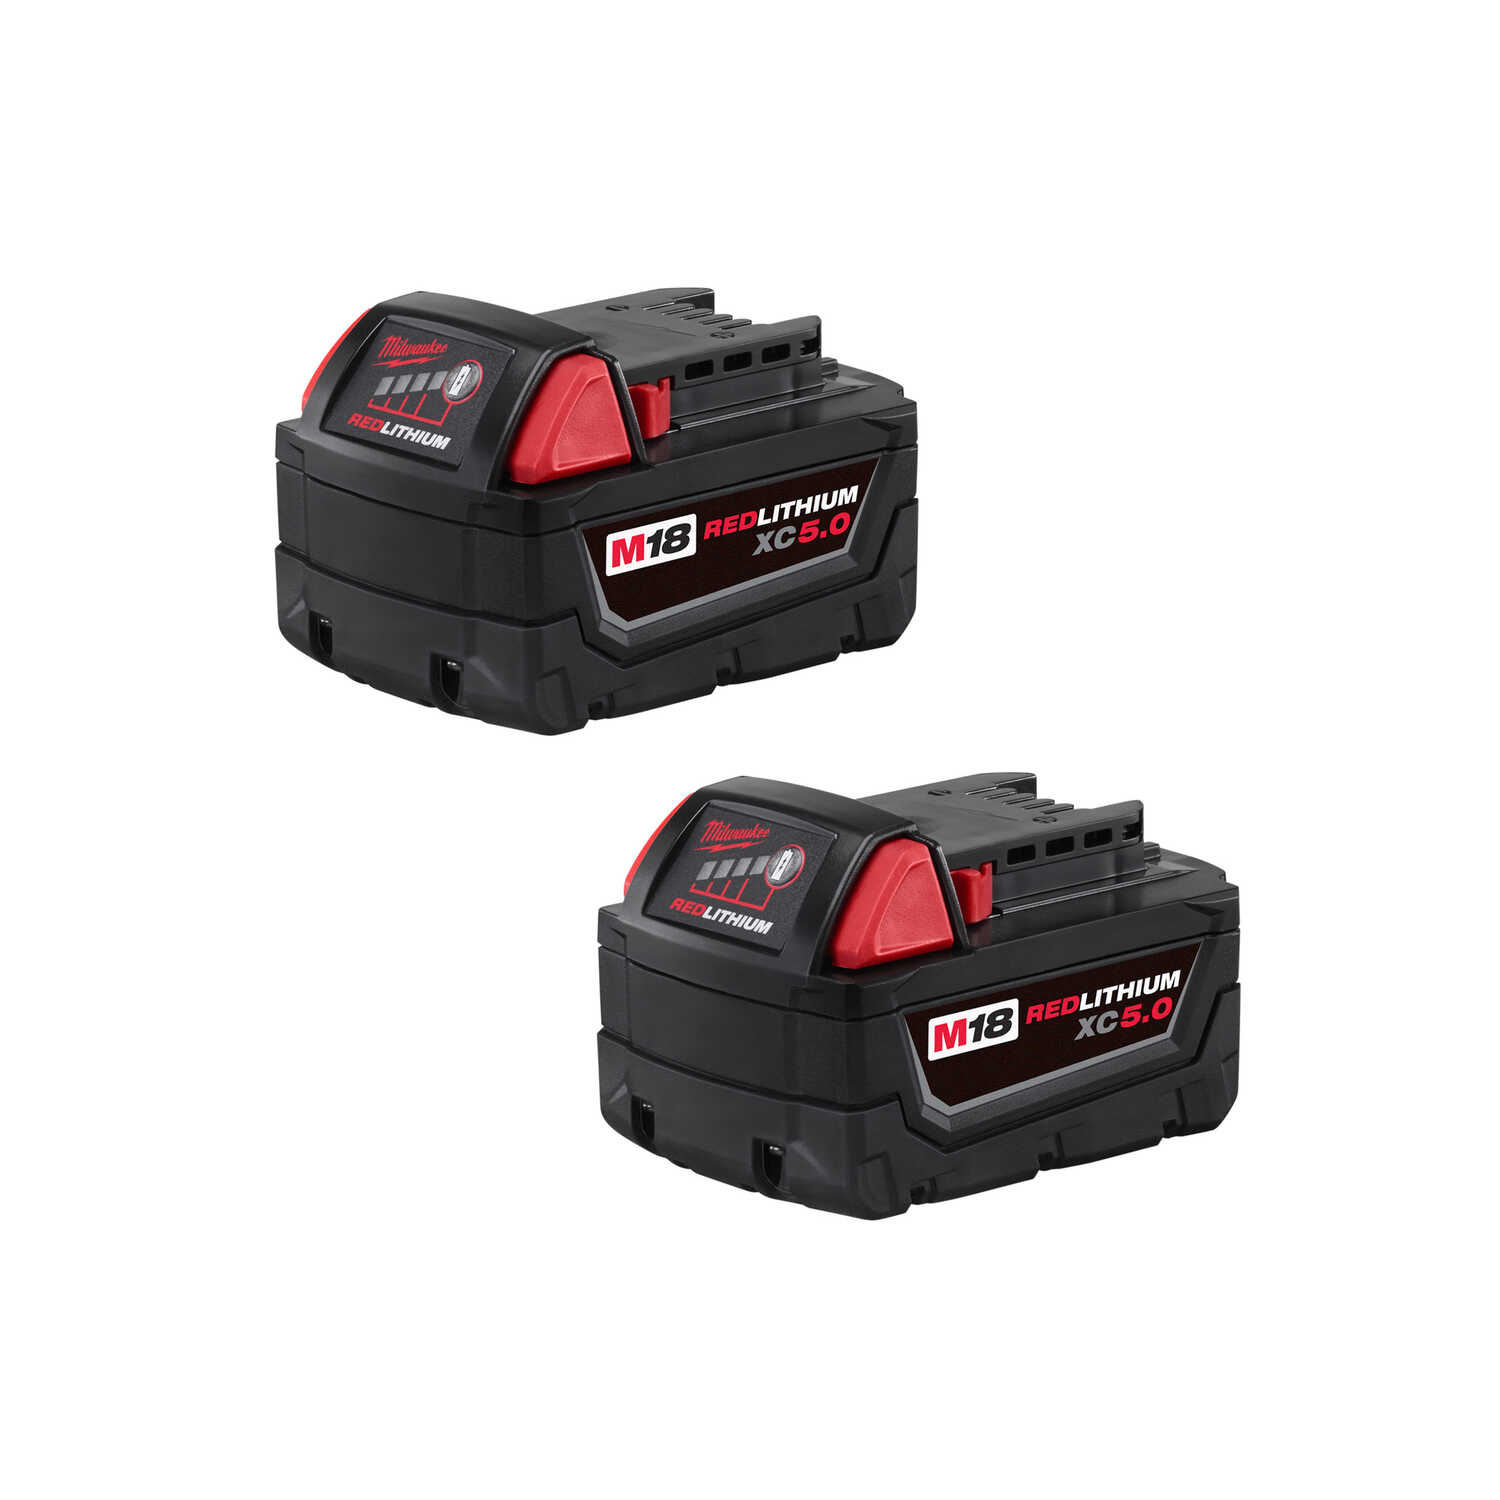 Milwaukee  M18 XC5.0  18 volt 5 Ah Lithium-Ion  Extended Capacity Battery Pack  2 pc.